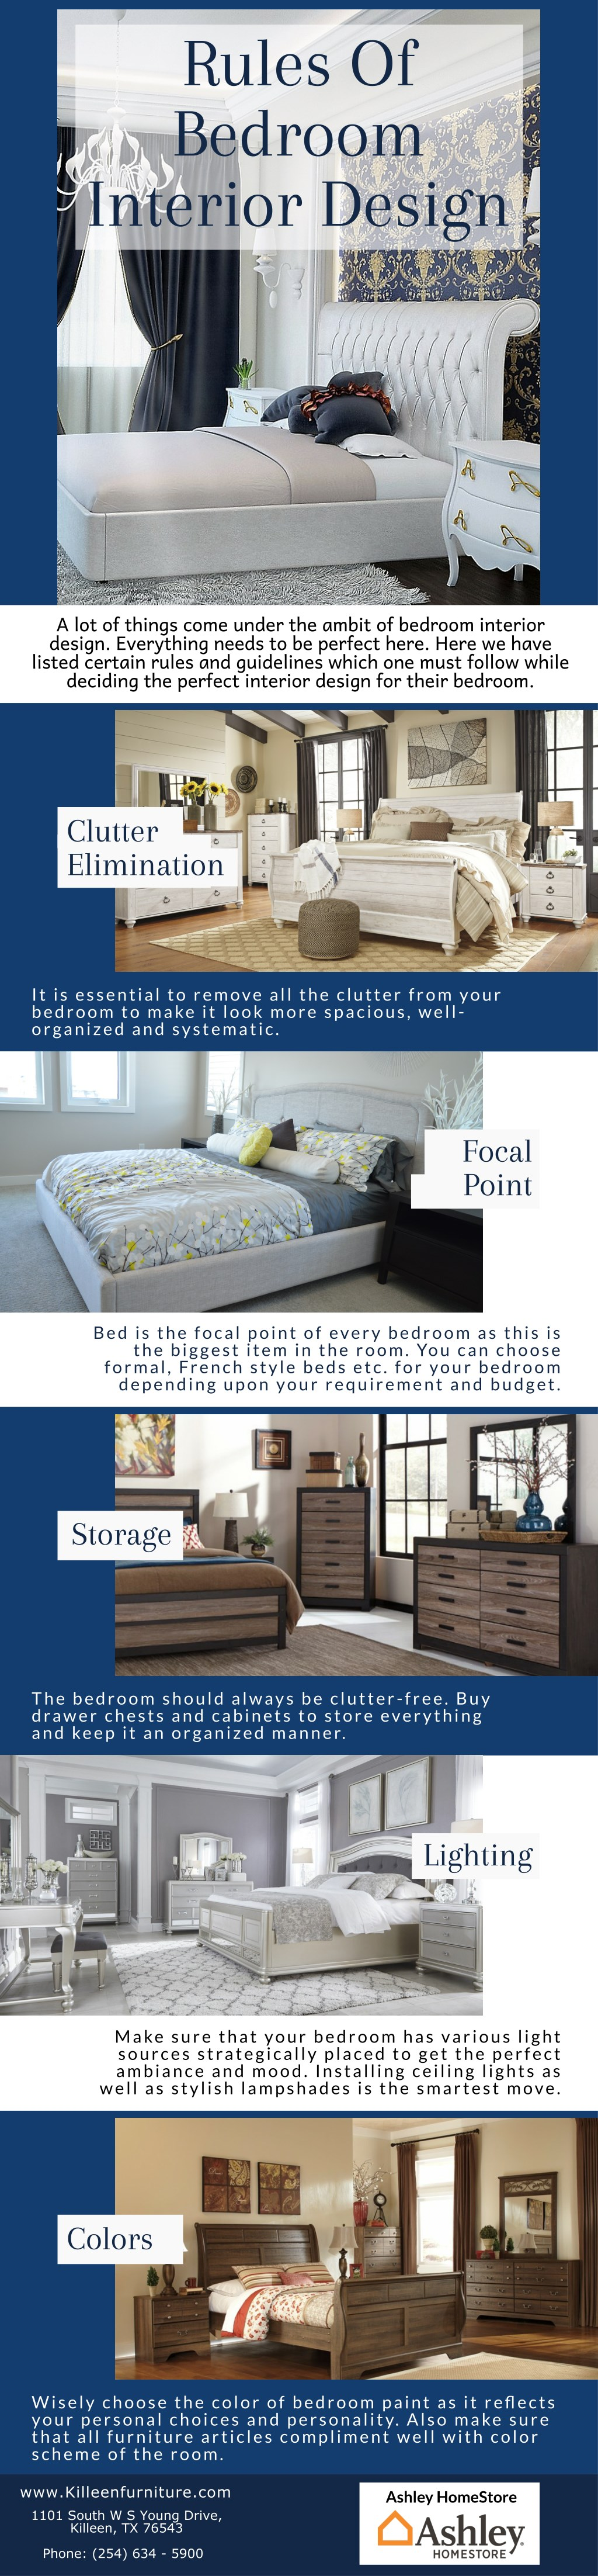 Ppt Rules Of Bedroom Interior Design Powerpoint Presentation Free Download Id 7942363